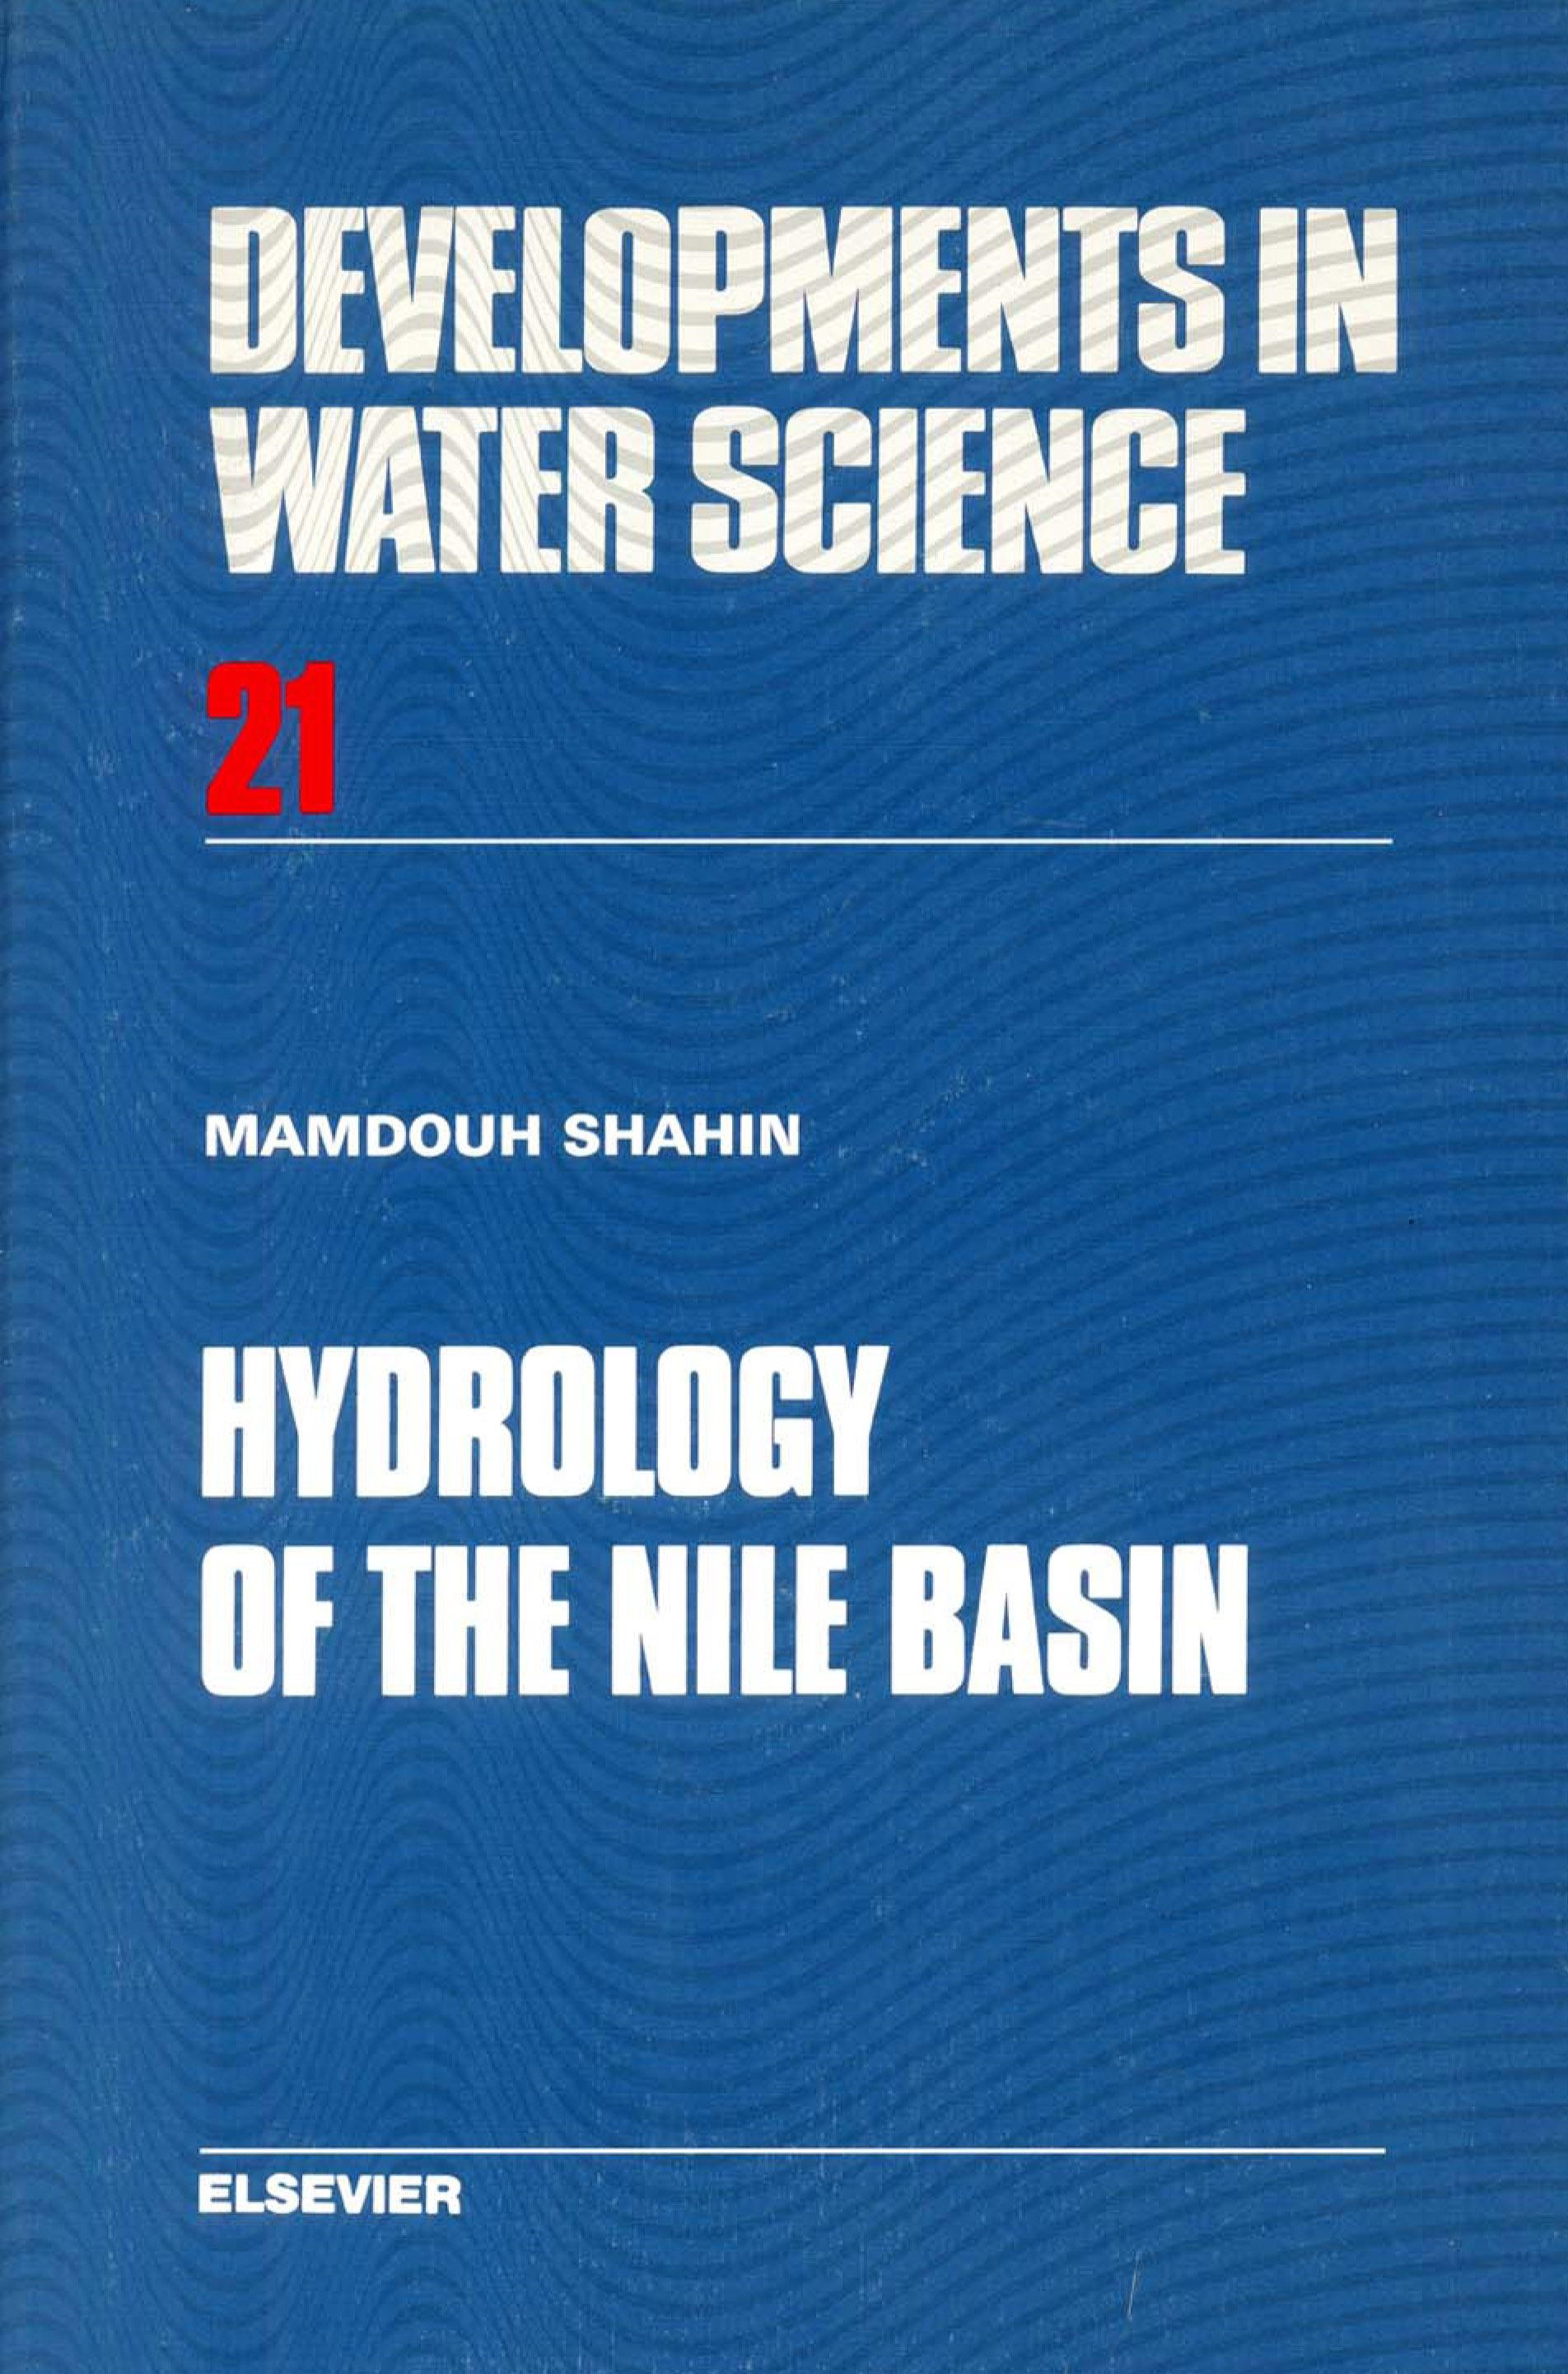 Hydrology of the Nile Basin. Developments in Water Science, Volume 21.